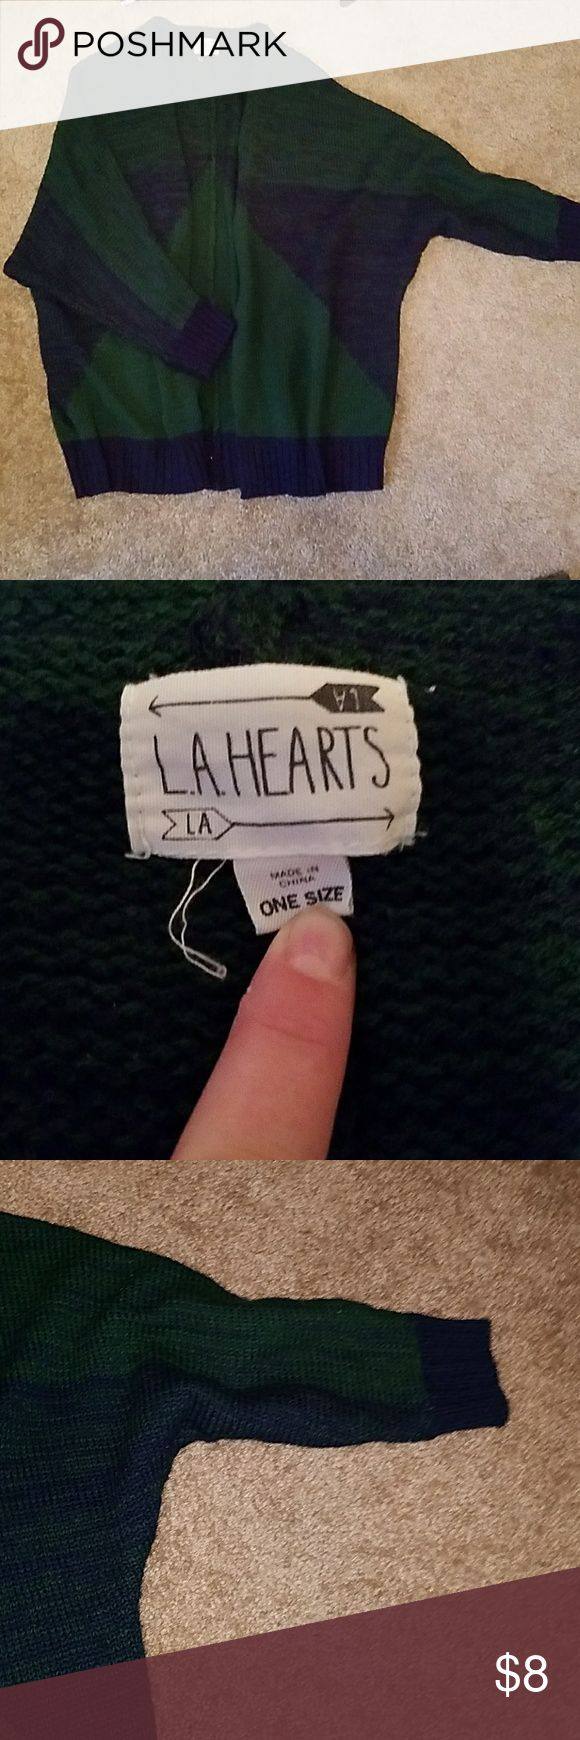 L.A. HEARTS warm fuzzy sweater Dark green and dark blue in color! Super warm, perfect for fall! One size. Has the baggy oversized sweater look with slightly shorter sleeves. Has some wear. Super cute! La Hearts Sweaters Cardigans